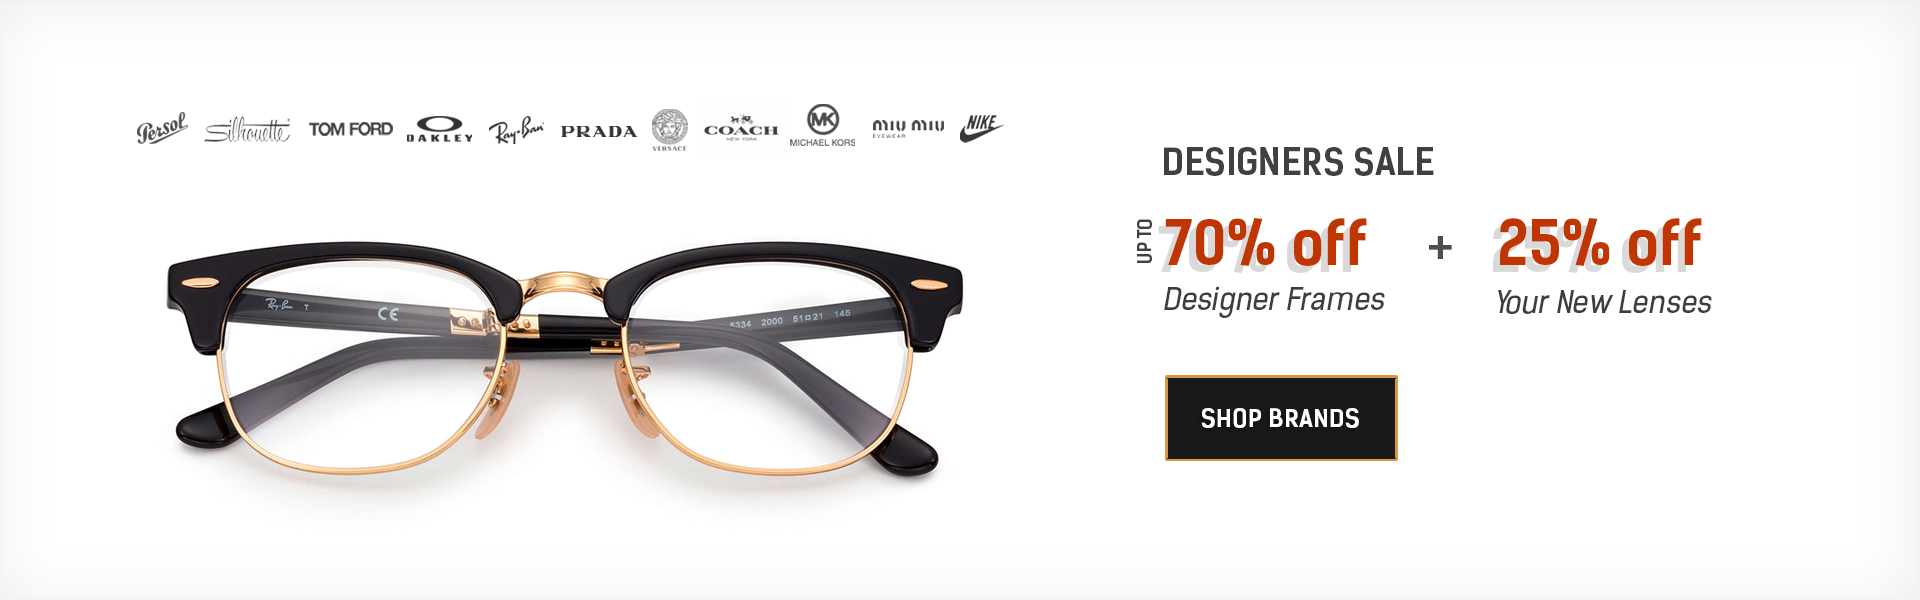 Designer glasses sale 70% off